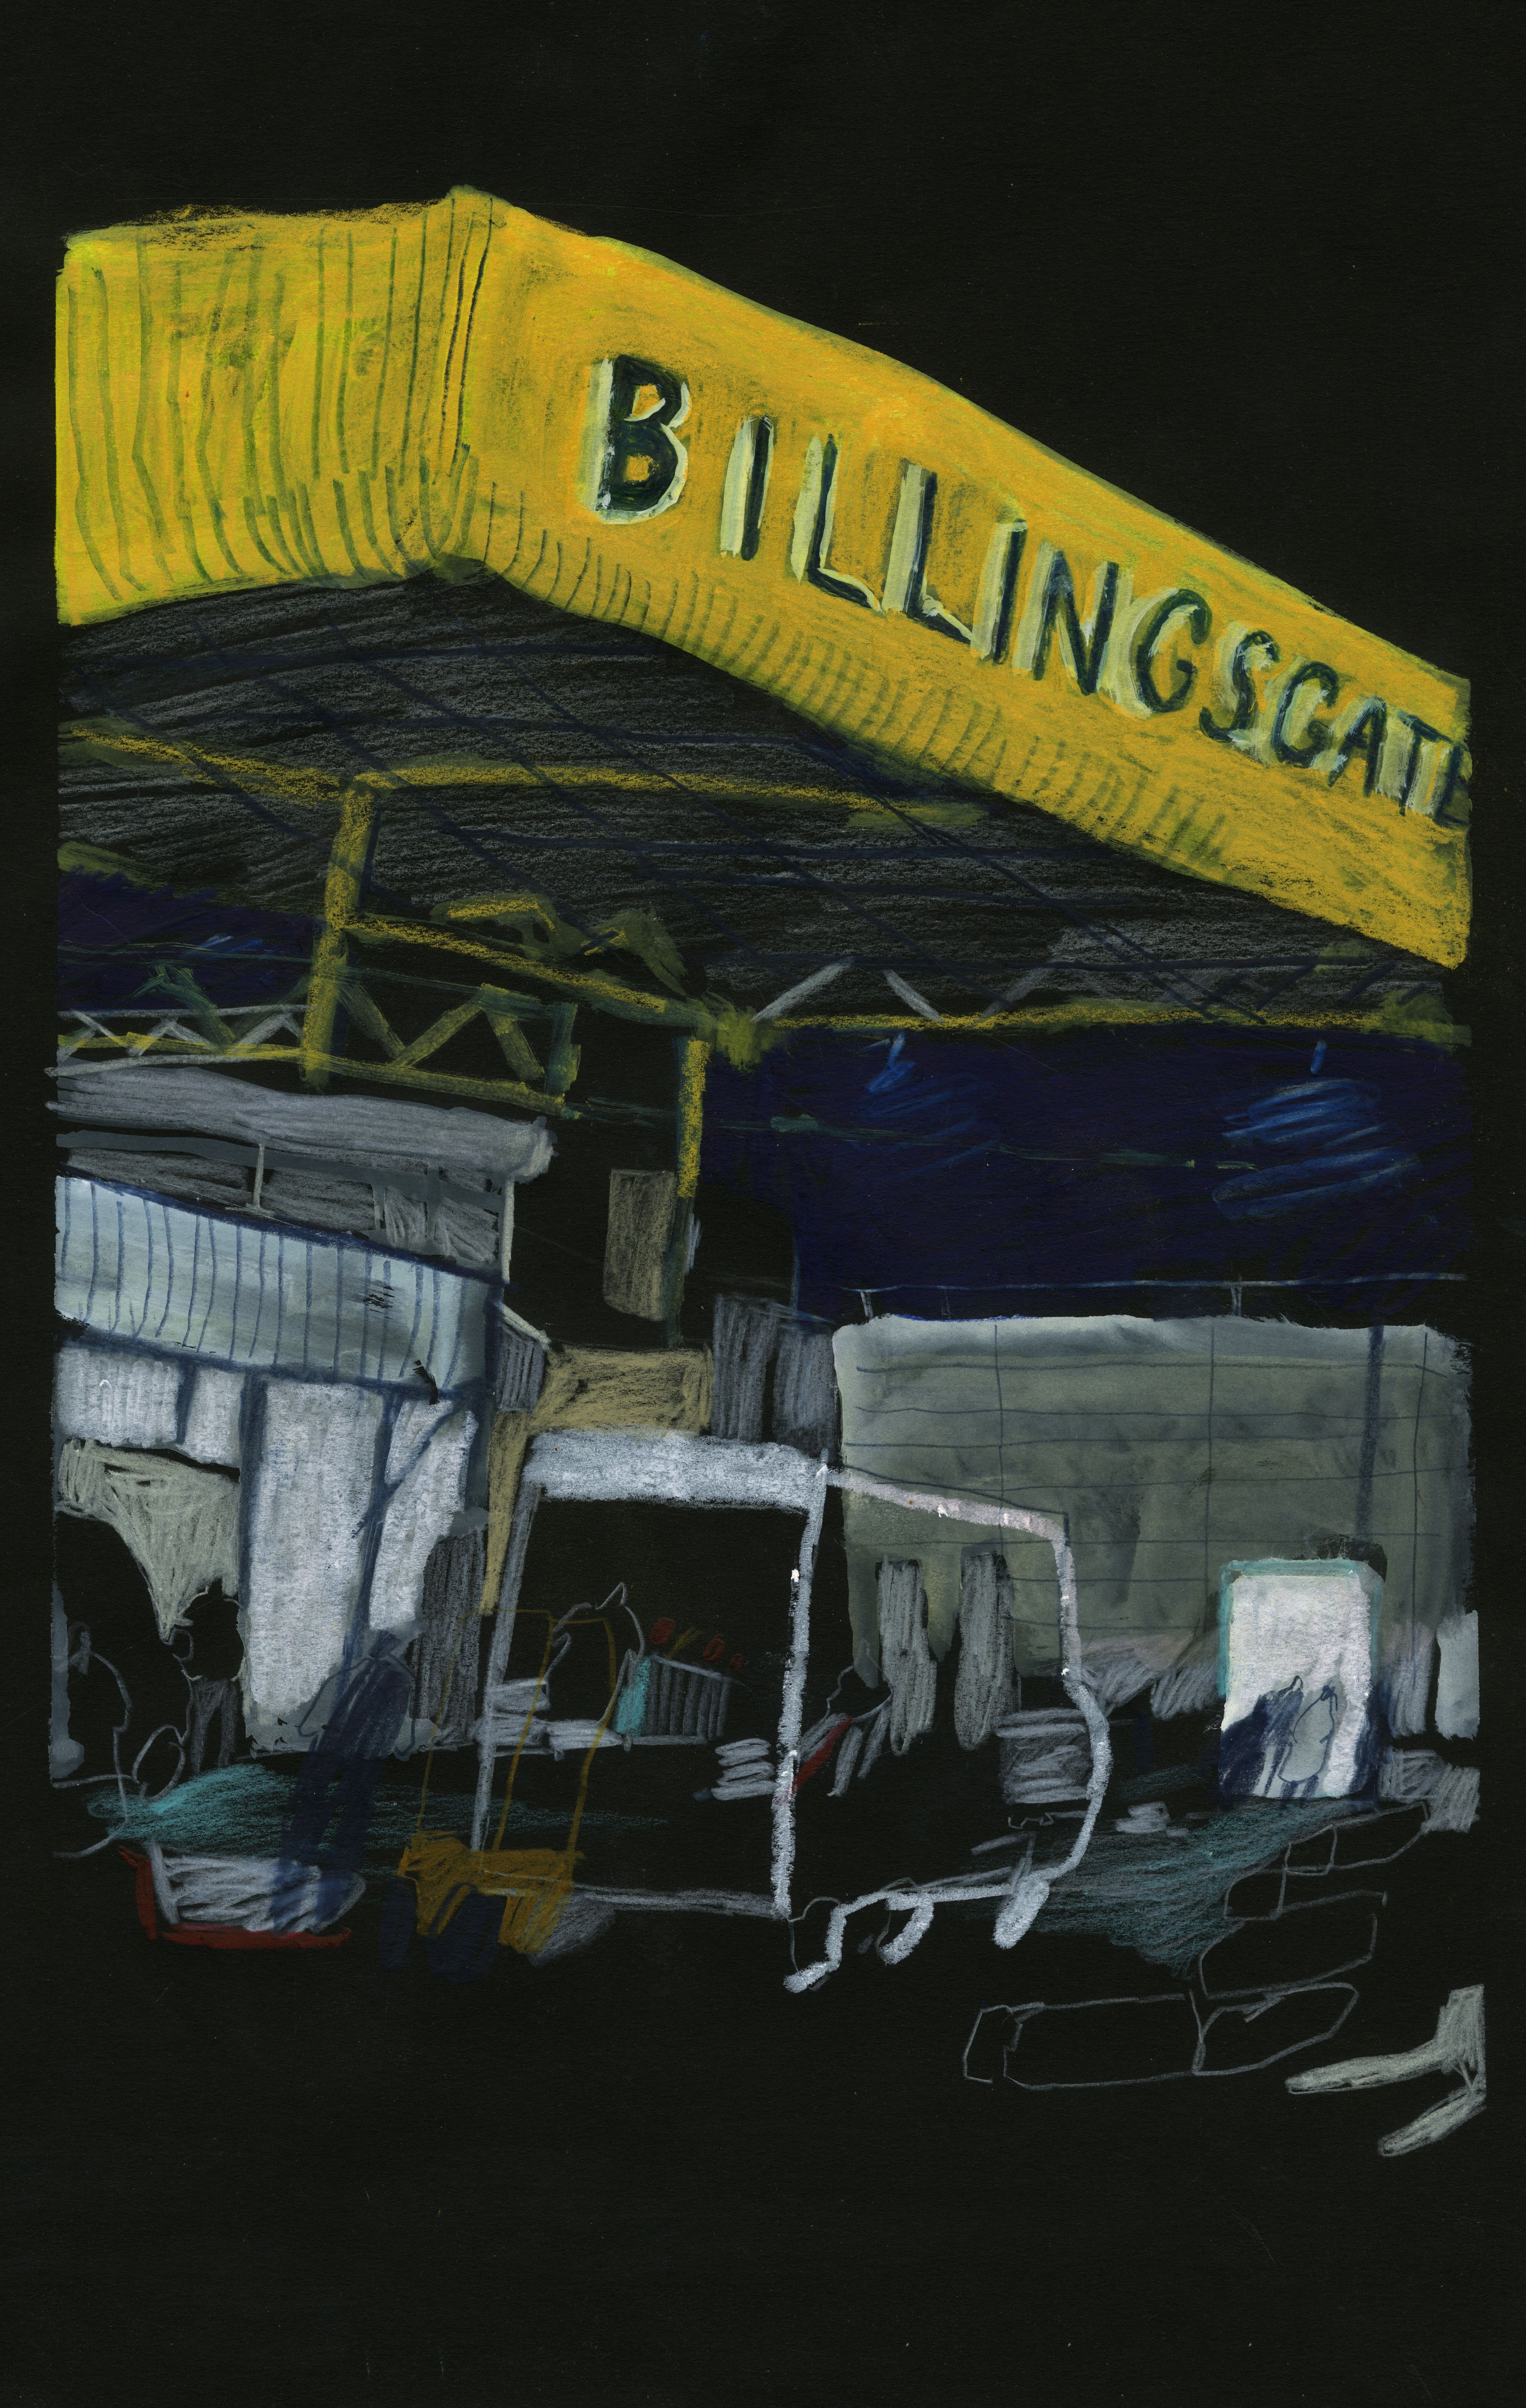 Billingsgate Reportage project.  An insight into the life at Billingsgate market, the UK's largest inland fish market.